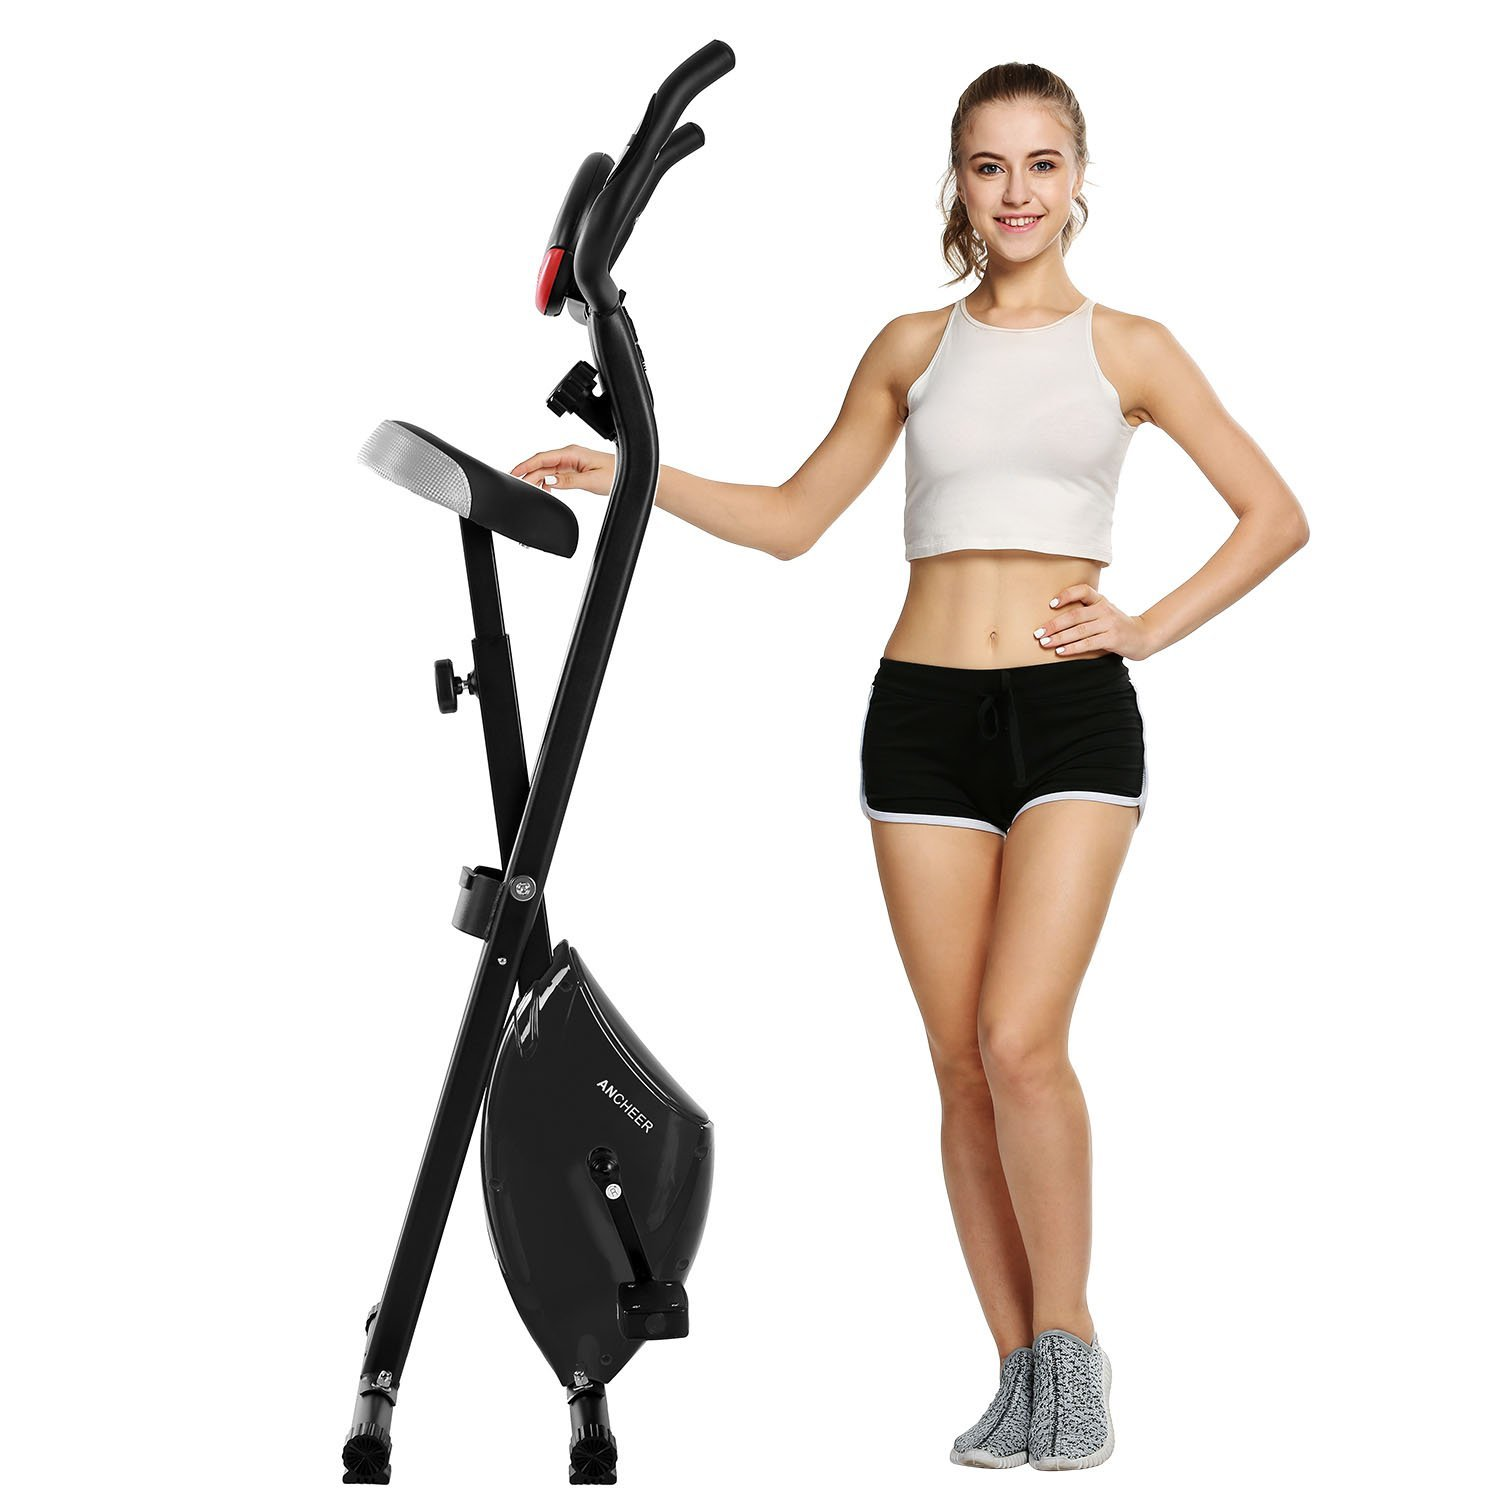 Ancheer Upright Exercise Bike